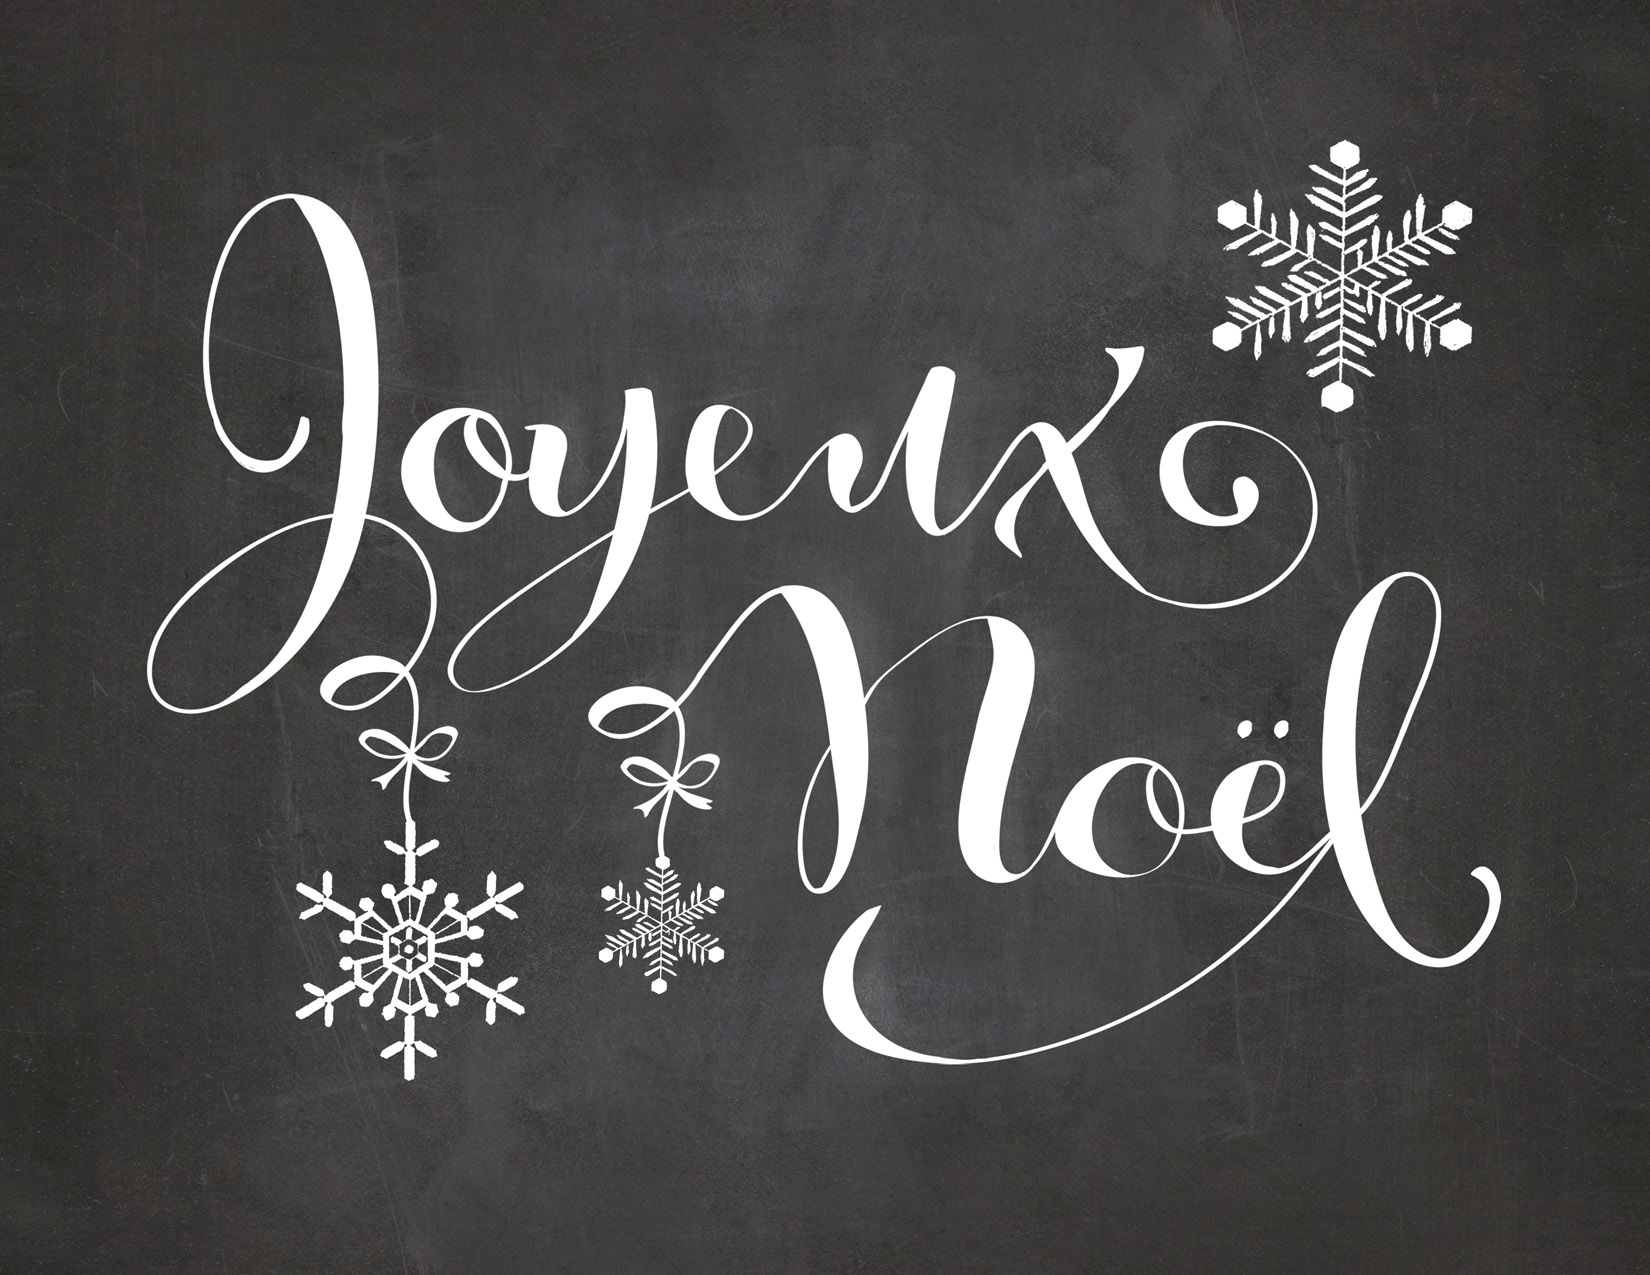 #575653 12 Free Christmas Chalkboard Printables • Little Gold Pixel 6481 Décoration Noel Word 1650x1275 px @ aertt.com